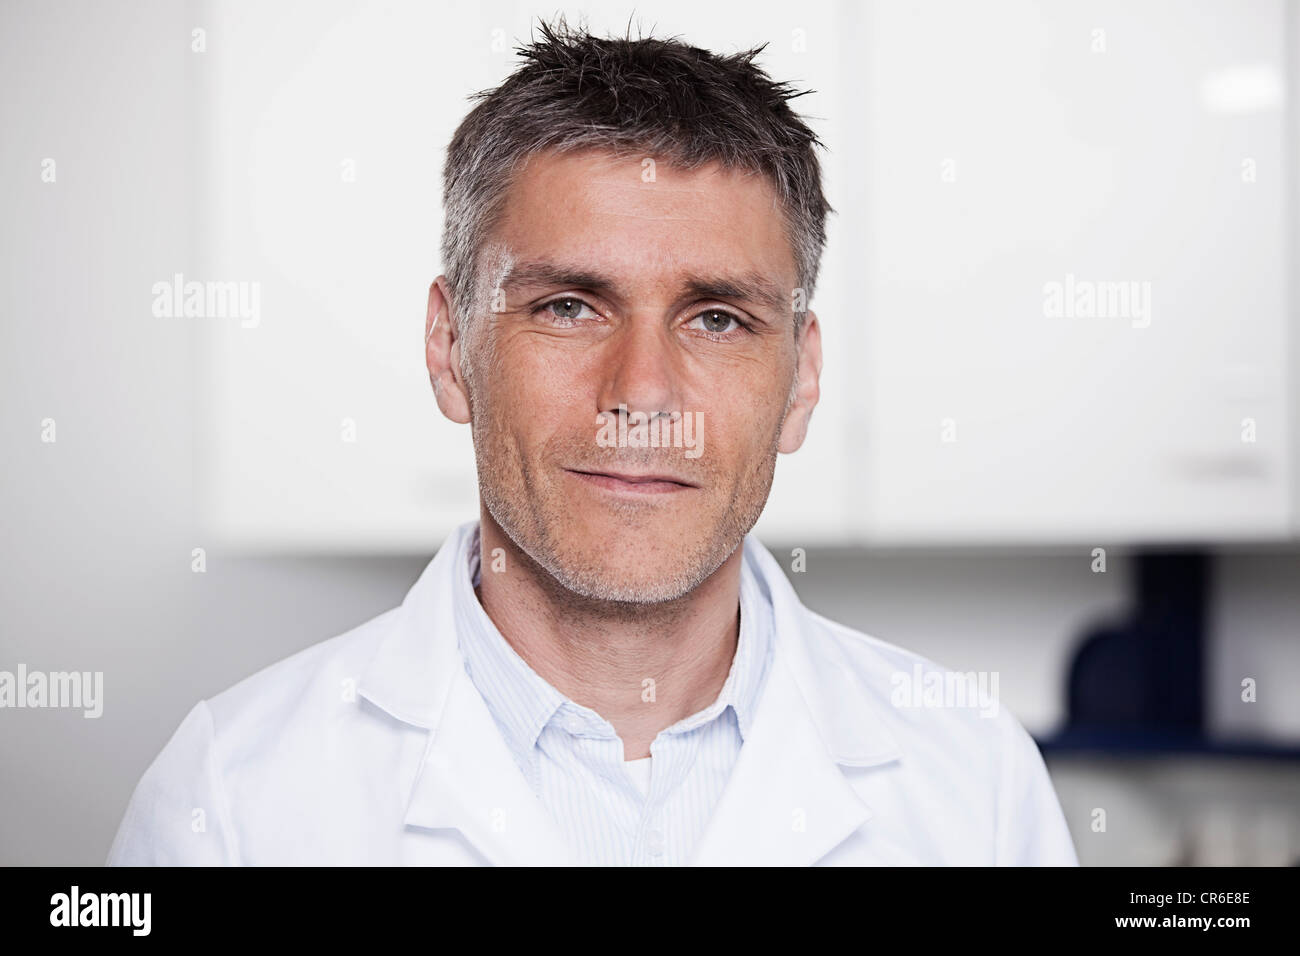 Germany, Bavaria, Munich, Scientist in laboratory, portrait - Stock Image